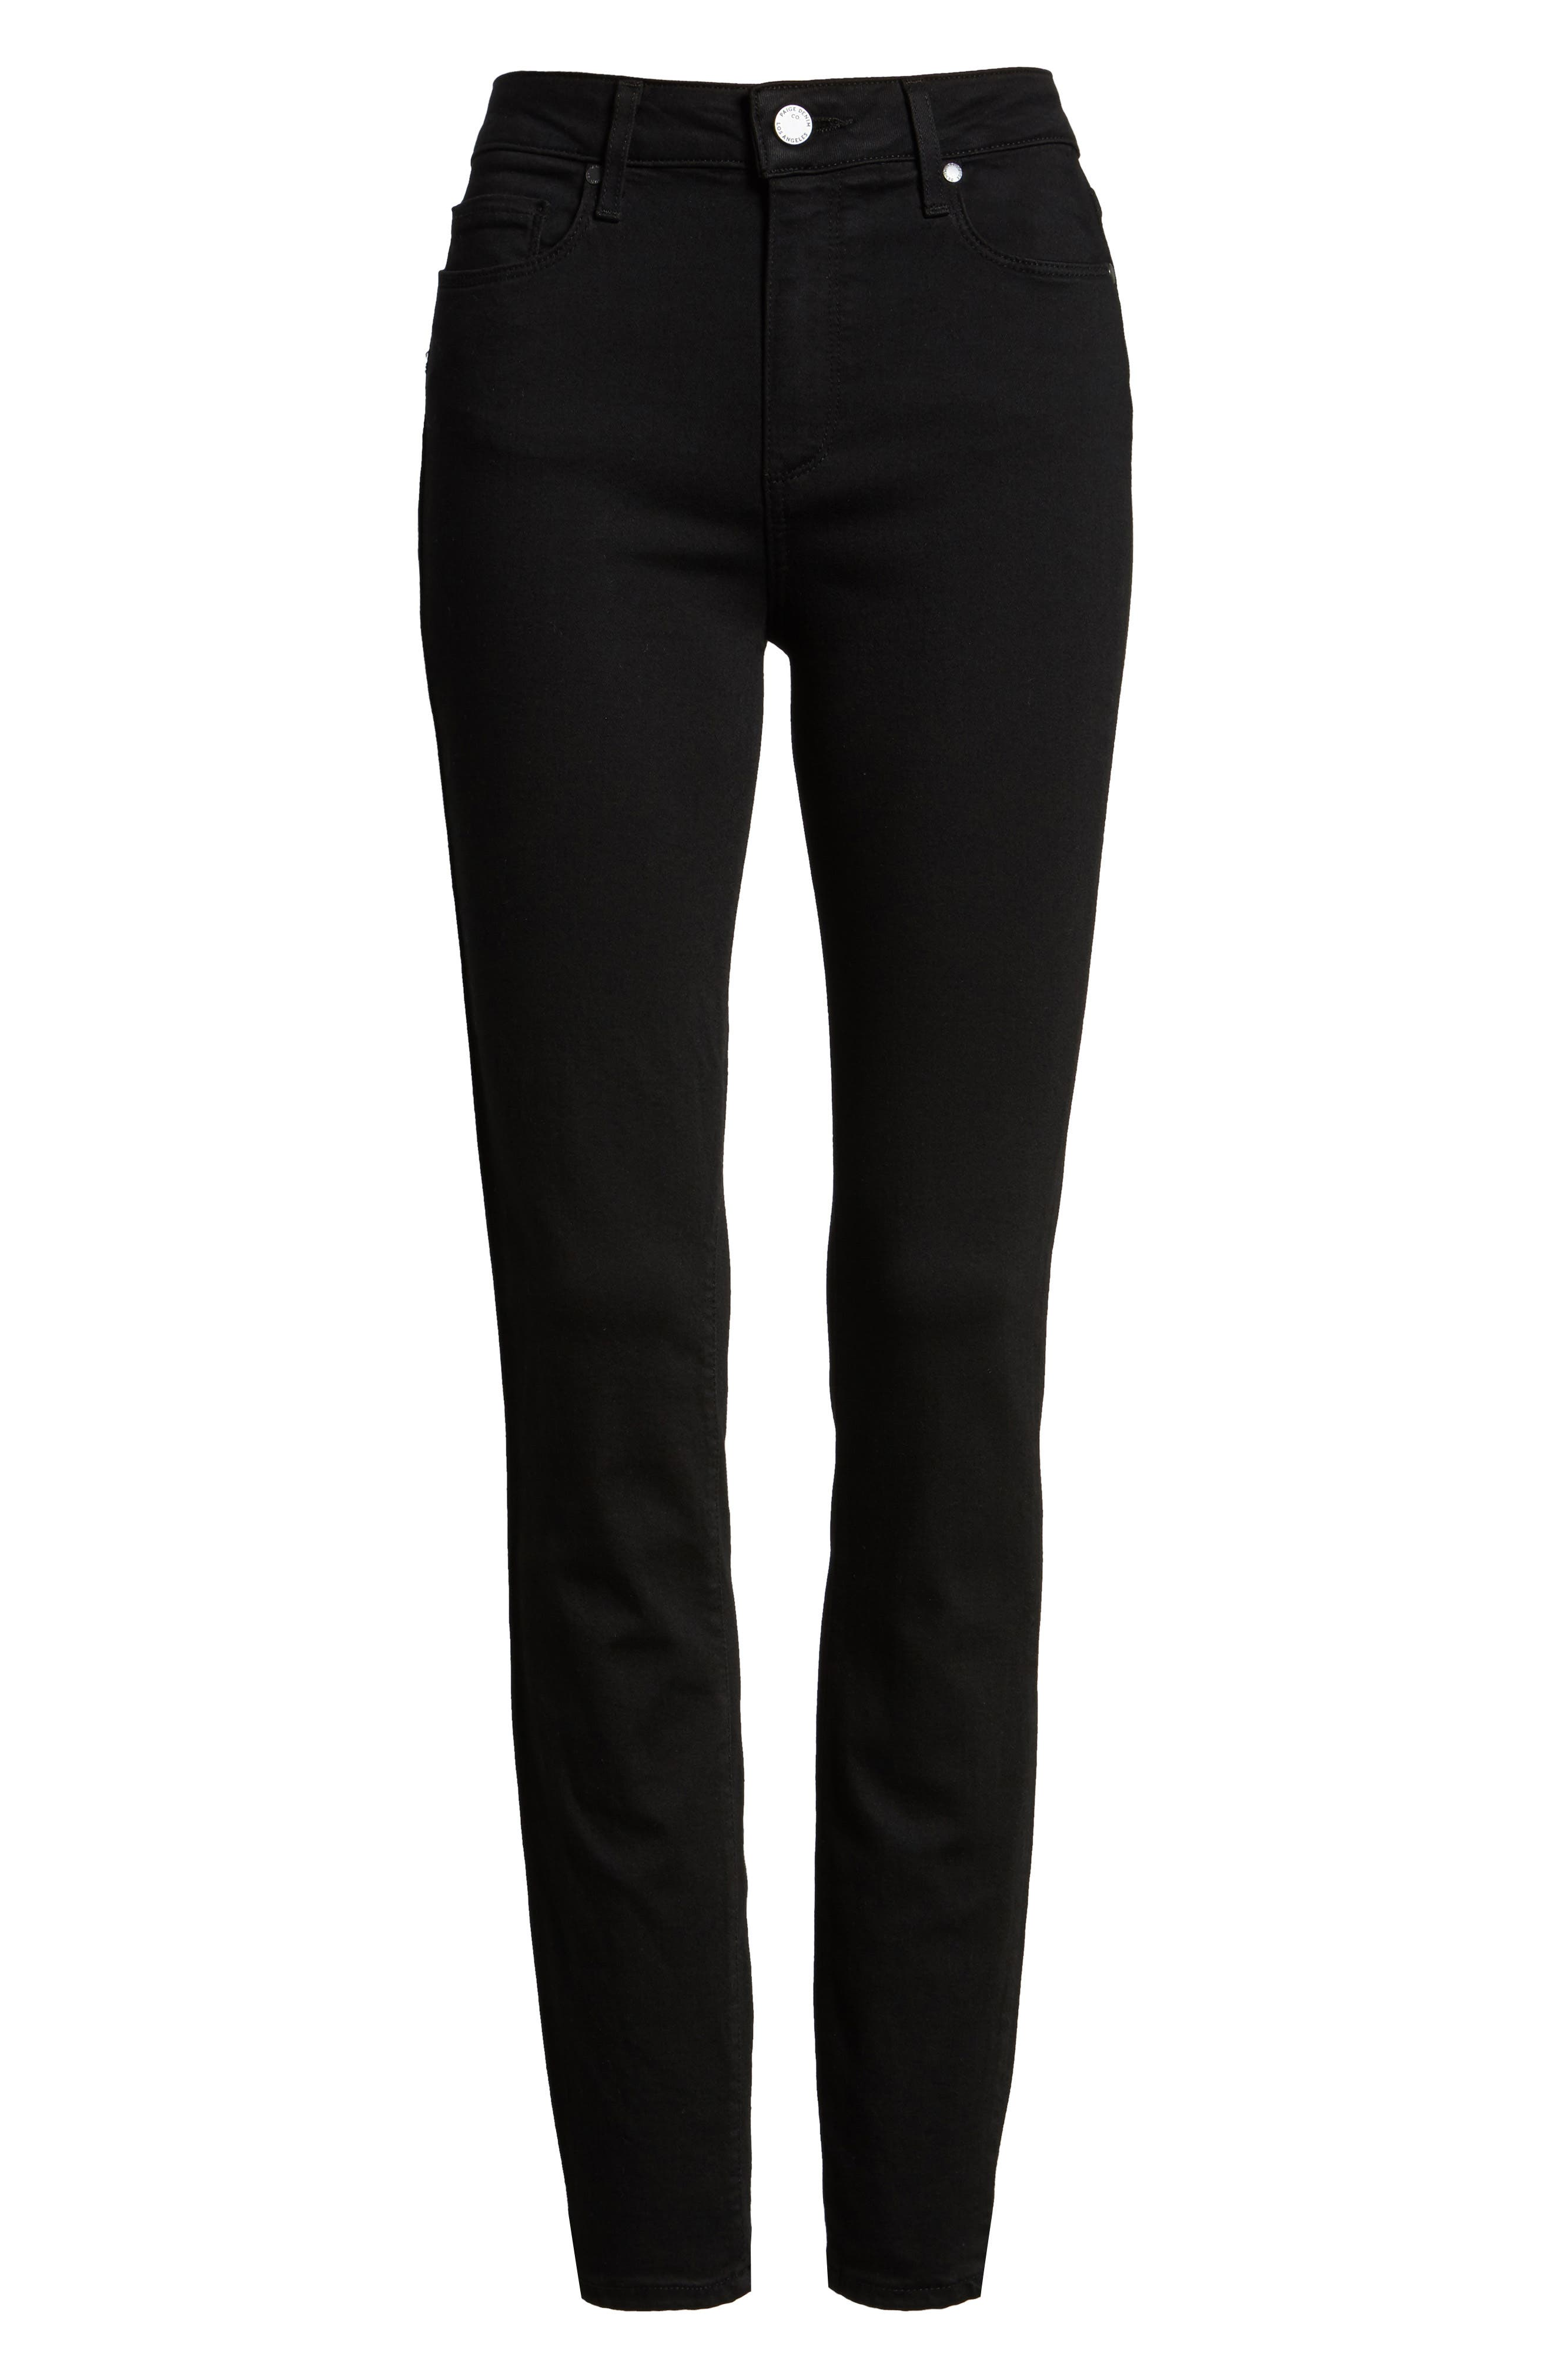 Transcend - Hoxton High Waist Ultra Skinny Stretch Jeans,                             Alternate thumbnail 3, color,                             BLACK SHADOW